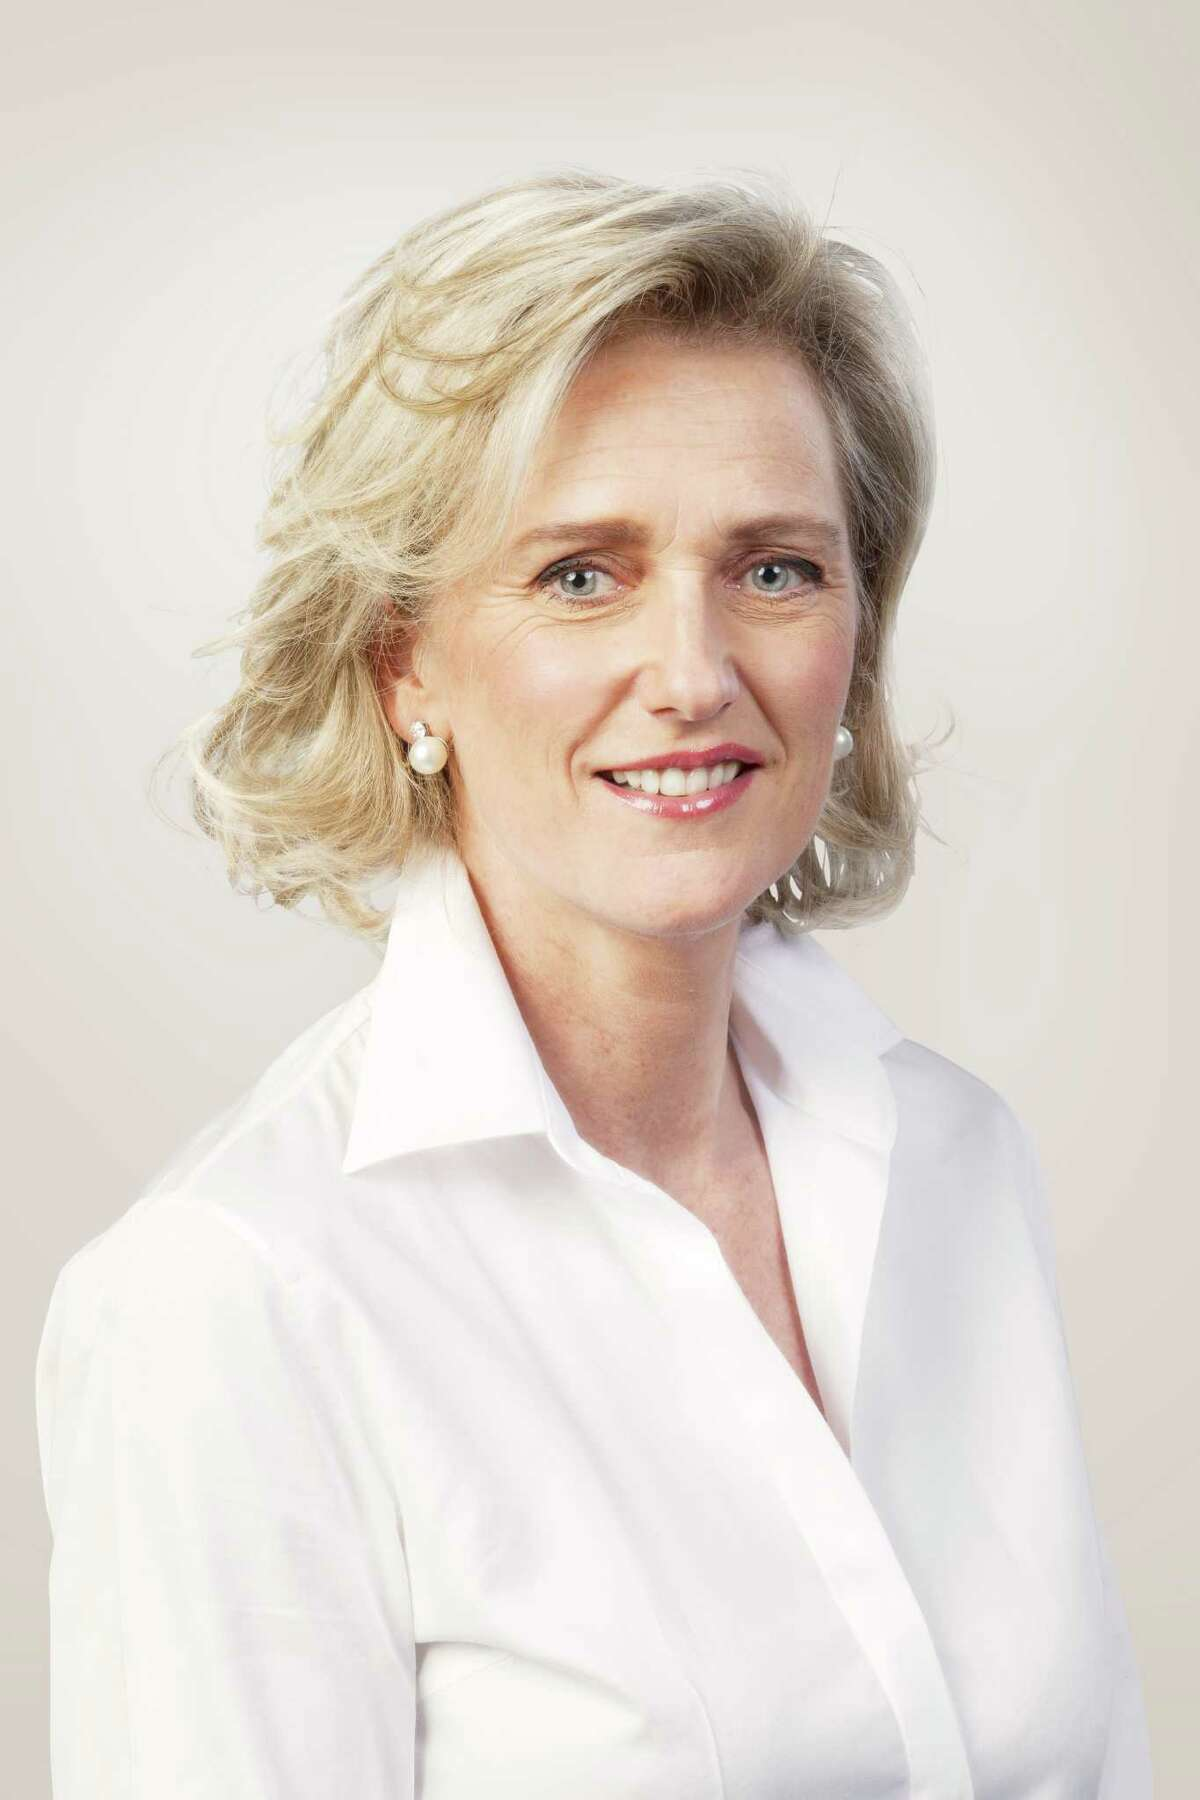 Princess Astrid will lead 200 government and business executives on a trade mission through Texas between Dec. 3 and Dec. 10, 2016.